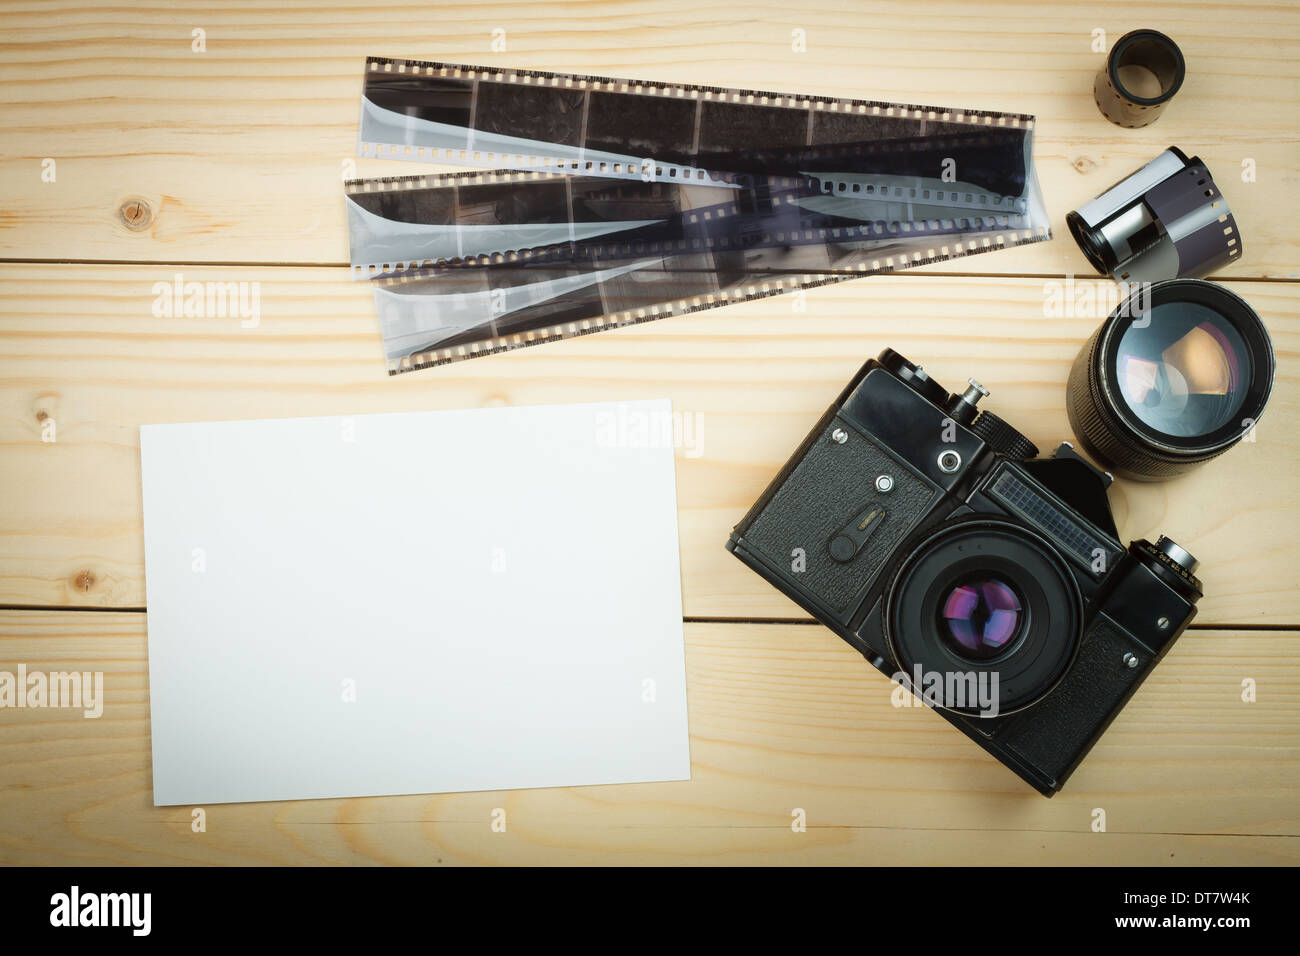 Old retro camera and film roll on wooden boards. Stock Photo